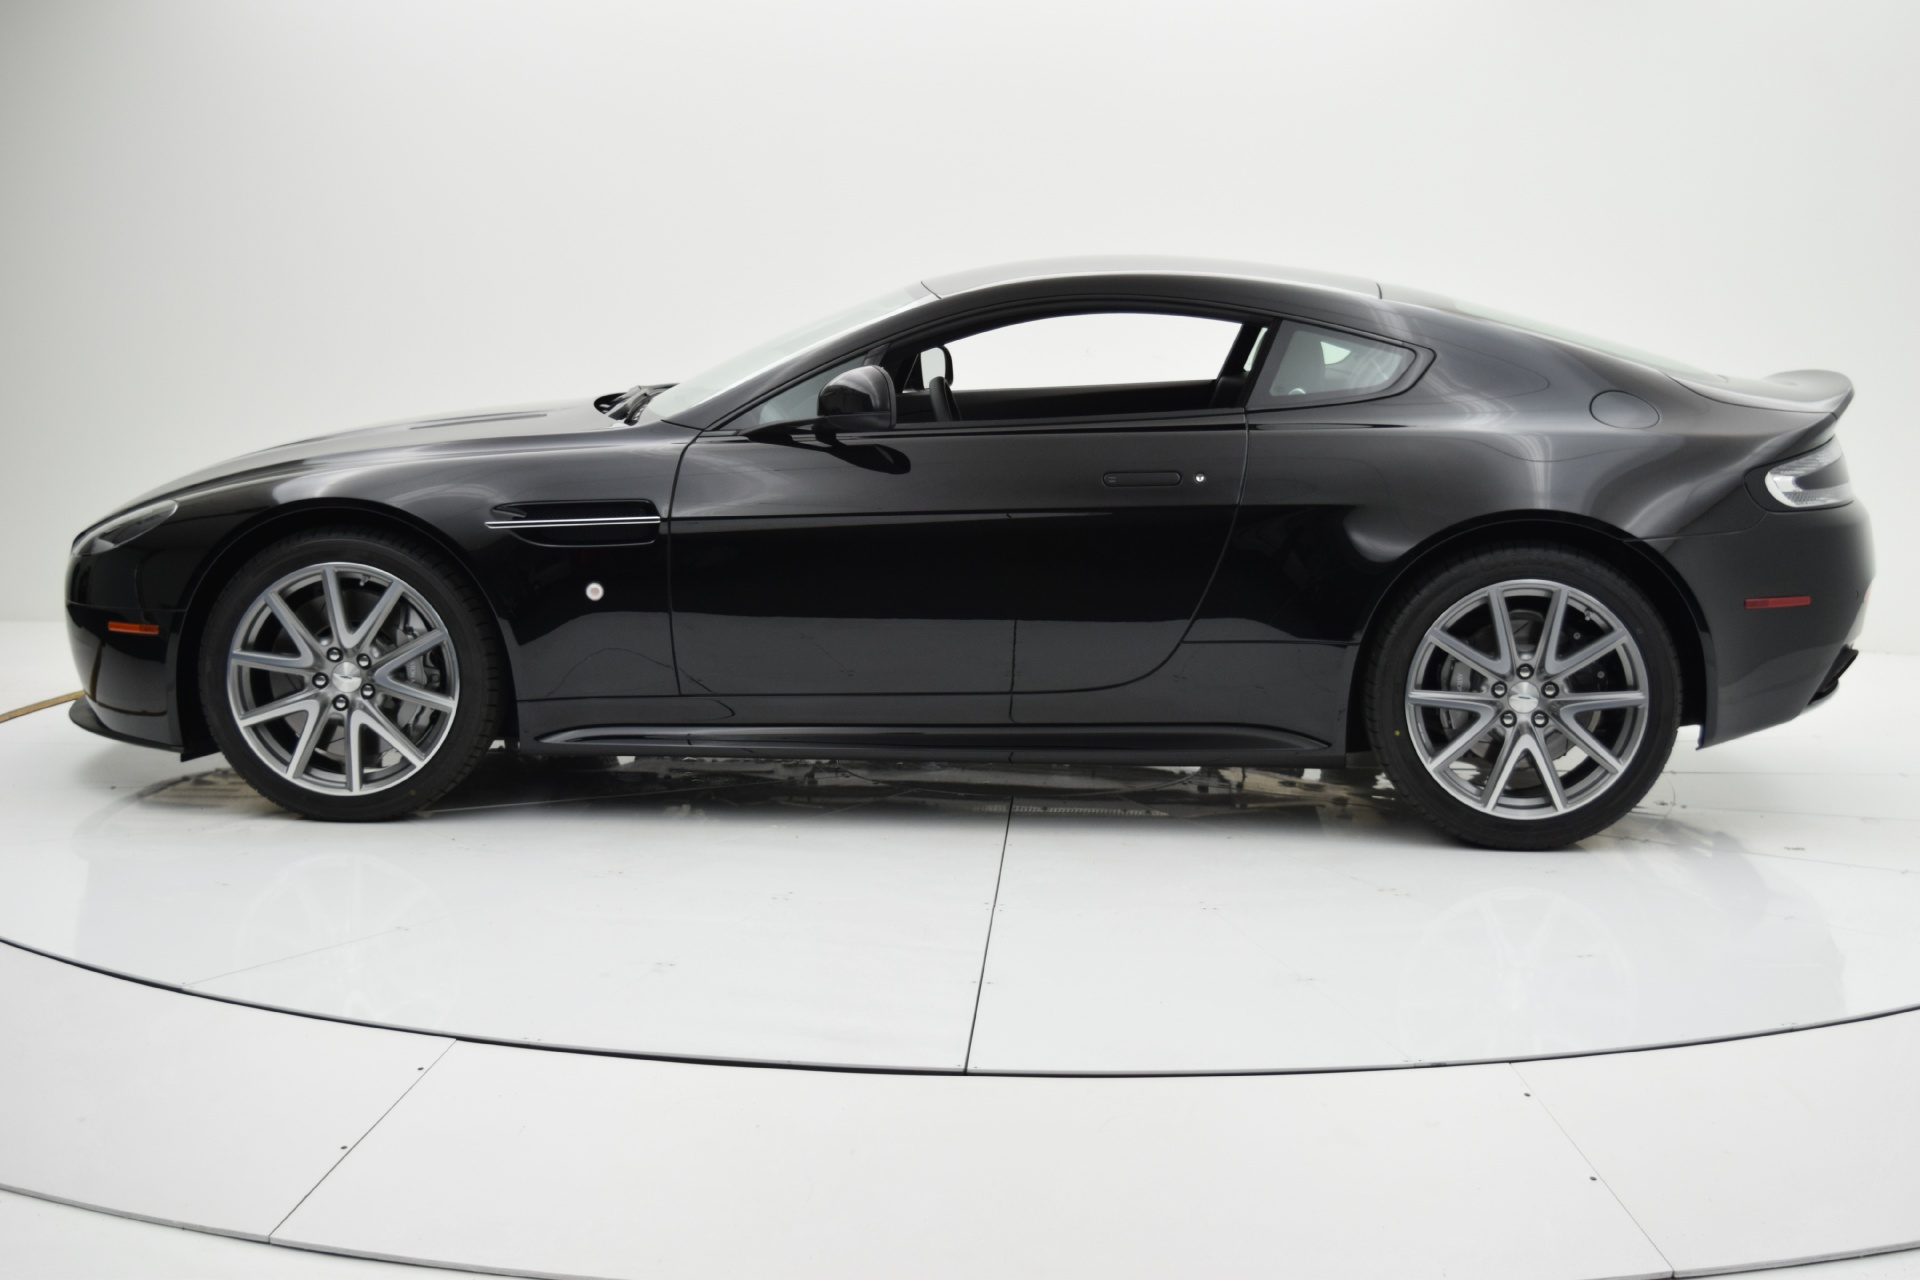 New Aston Martin V Vantage GT Coupe For Sale FC - Aston martin gt